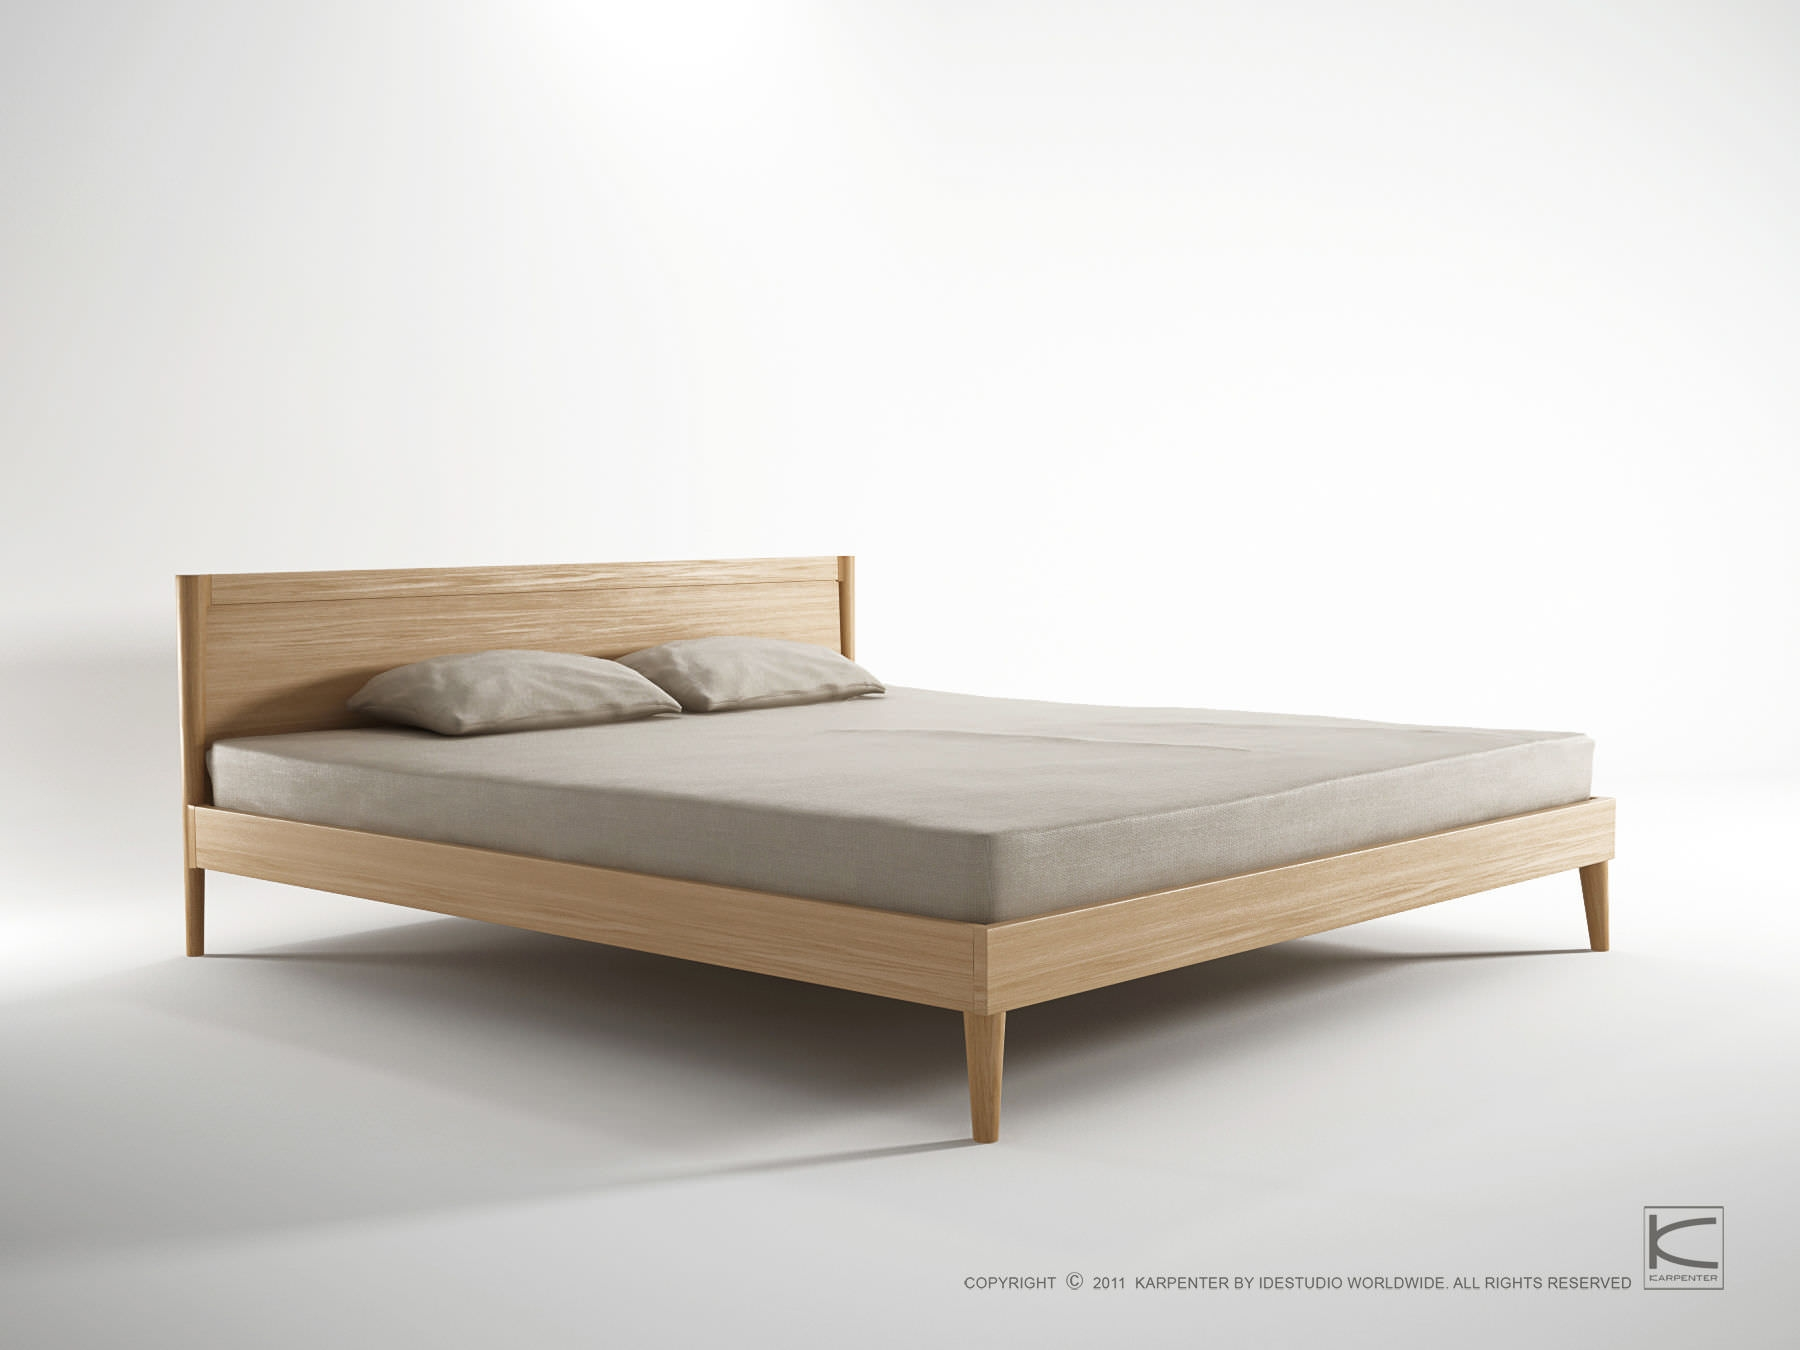 buy online 44e11 35a3d Scandinavian Bed Frames | Bed Frames Ideas